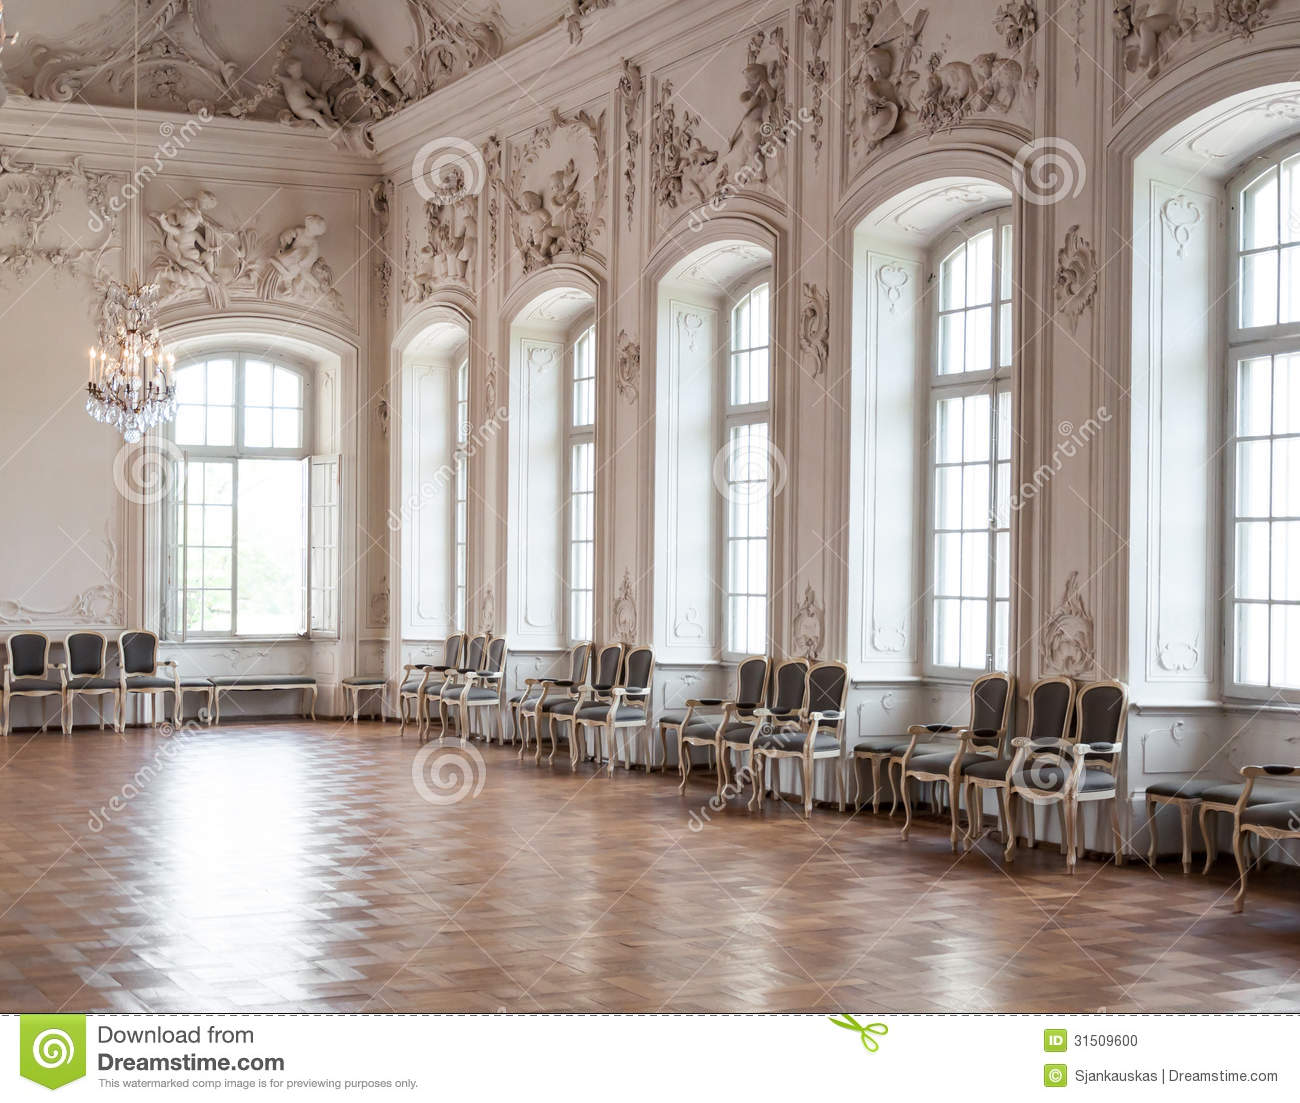 Great Hall In Rundale Palace Stock Photo Image 31509600